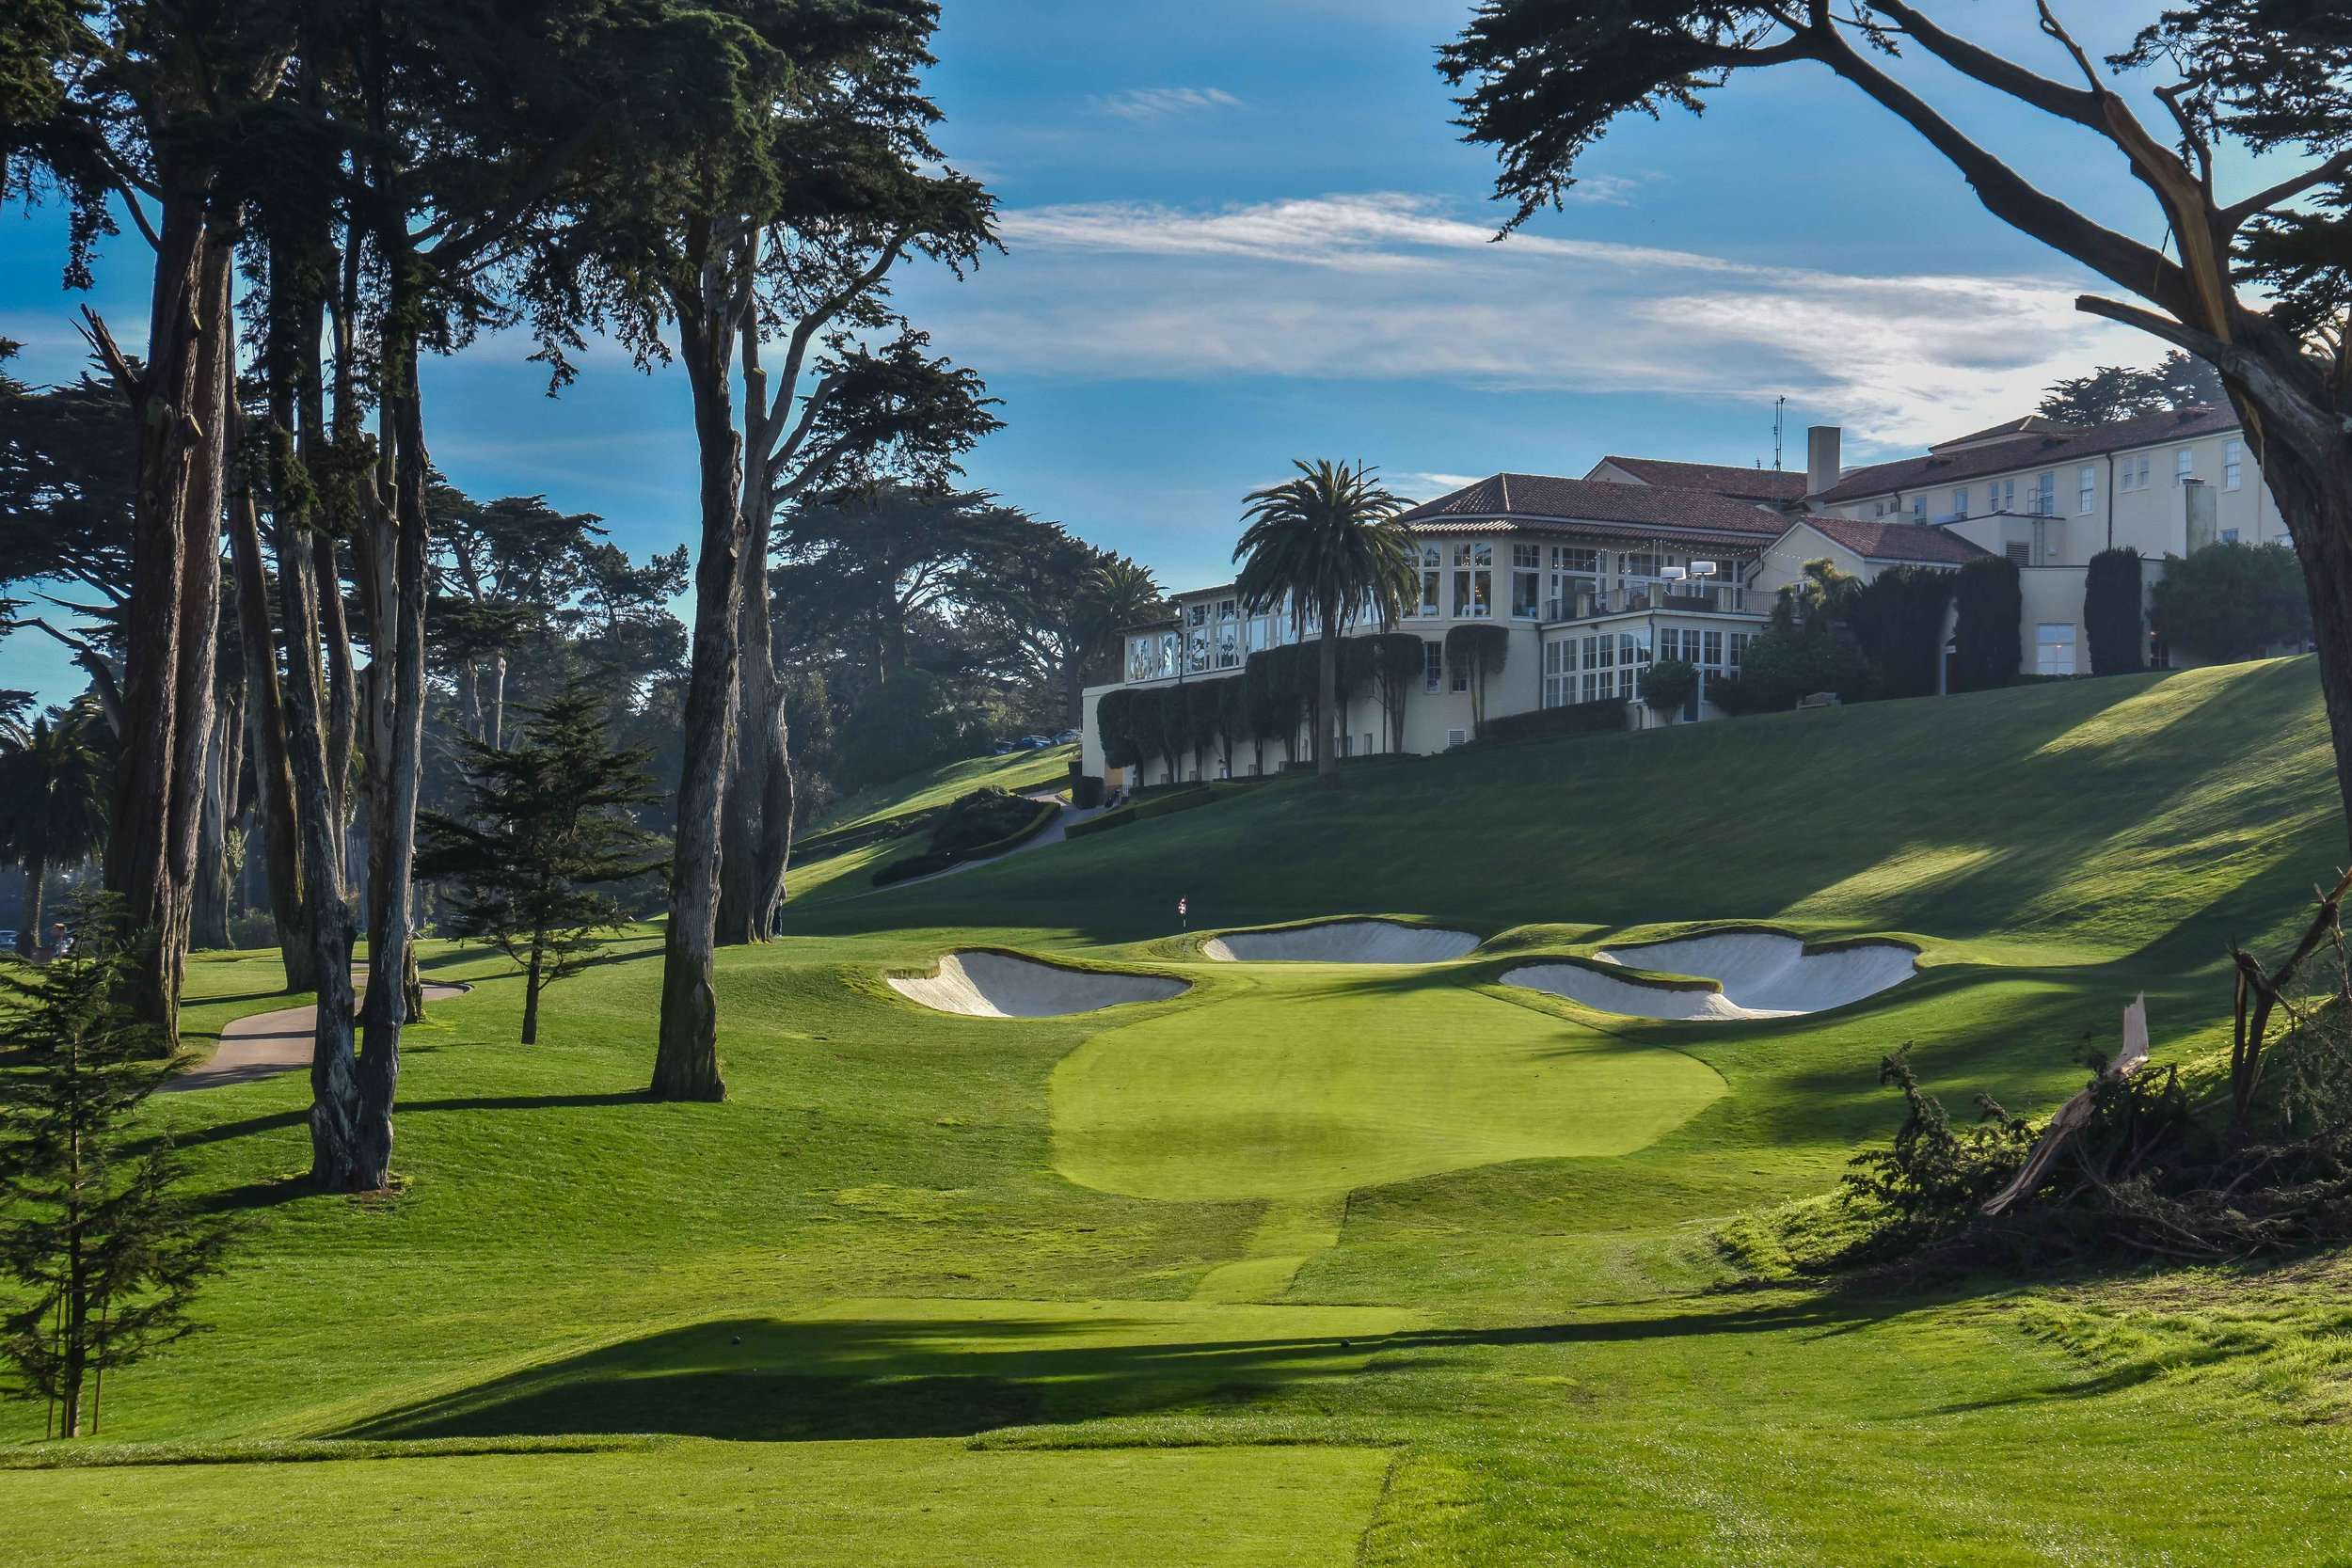 The par 3 8th hole at Olympic Club